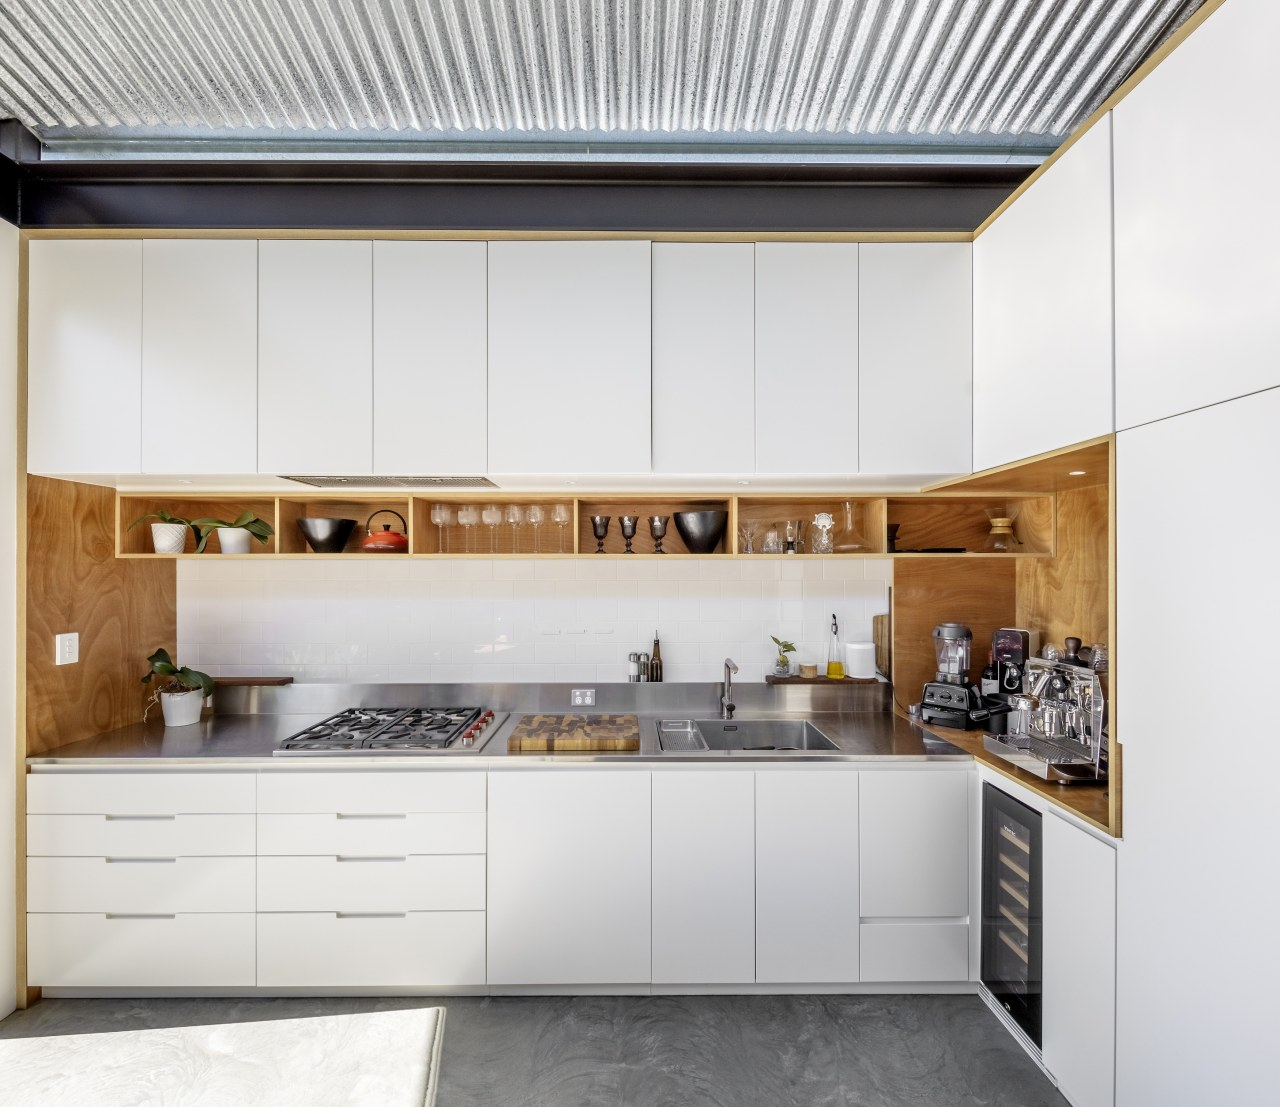 The home's white and wood kitchen.